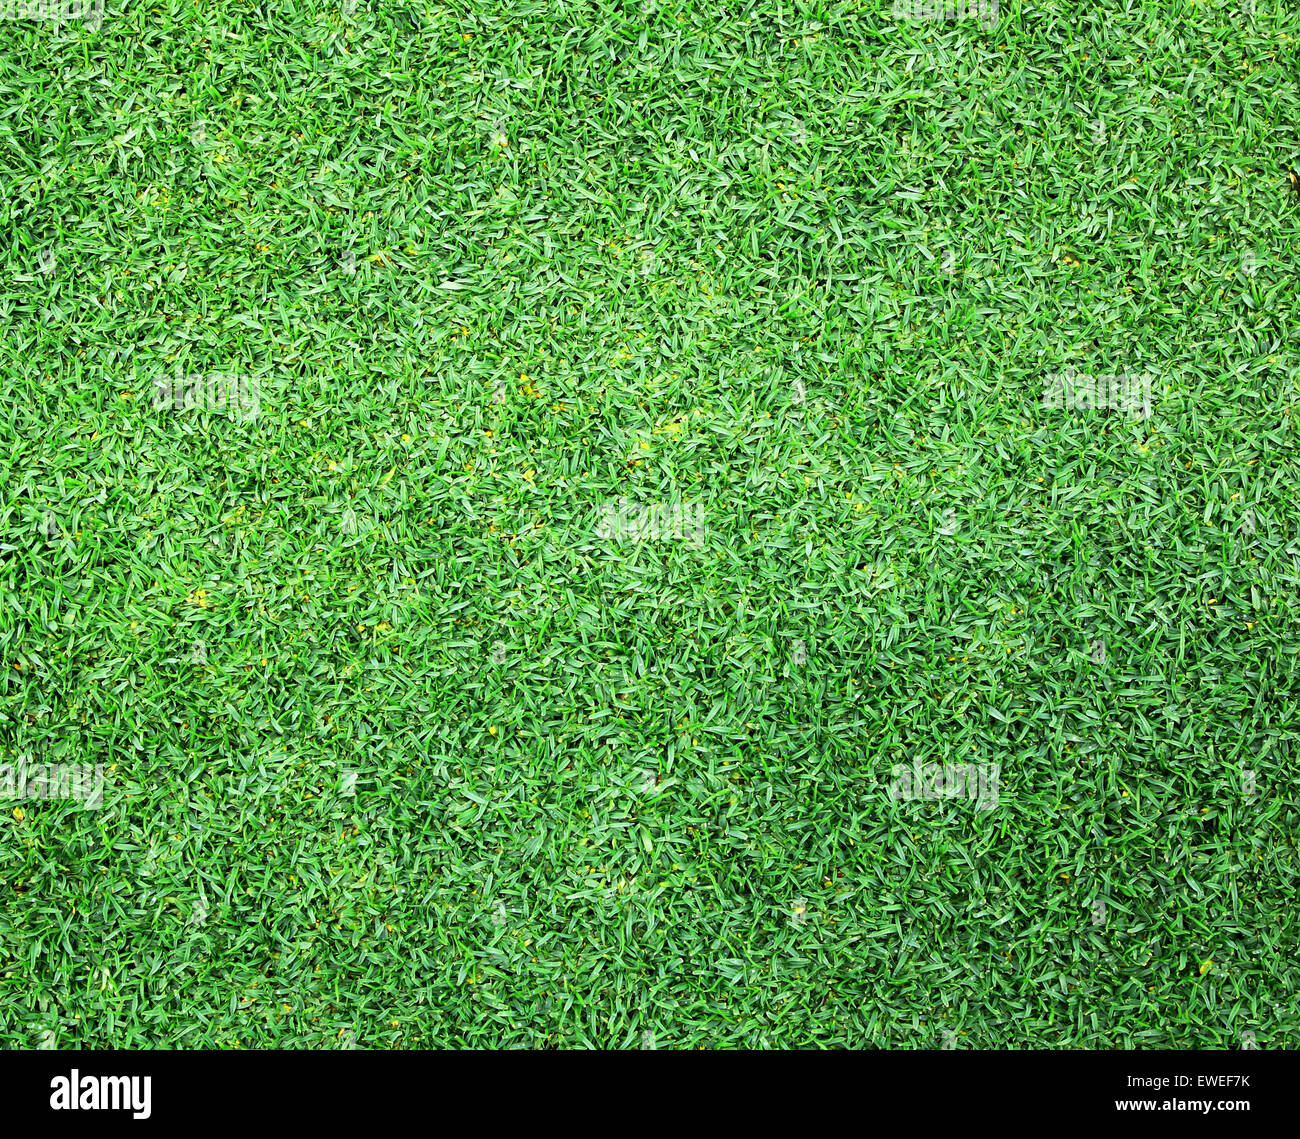 Golf green grass abstract background, nature, outdoor garden. - Stock Image